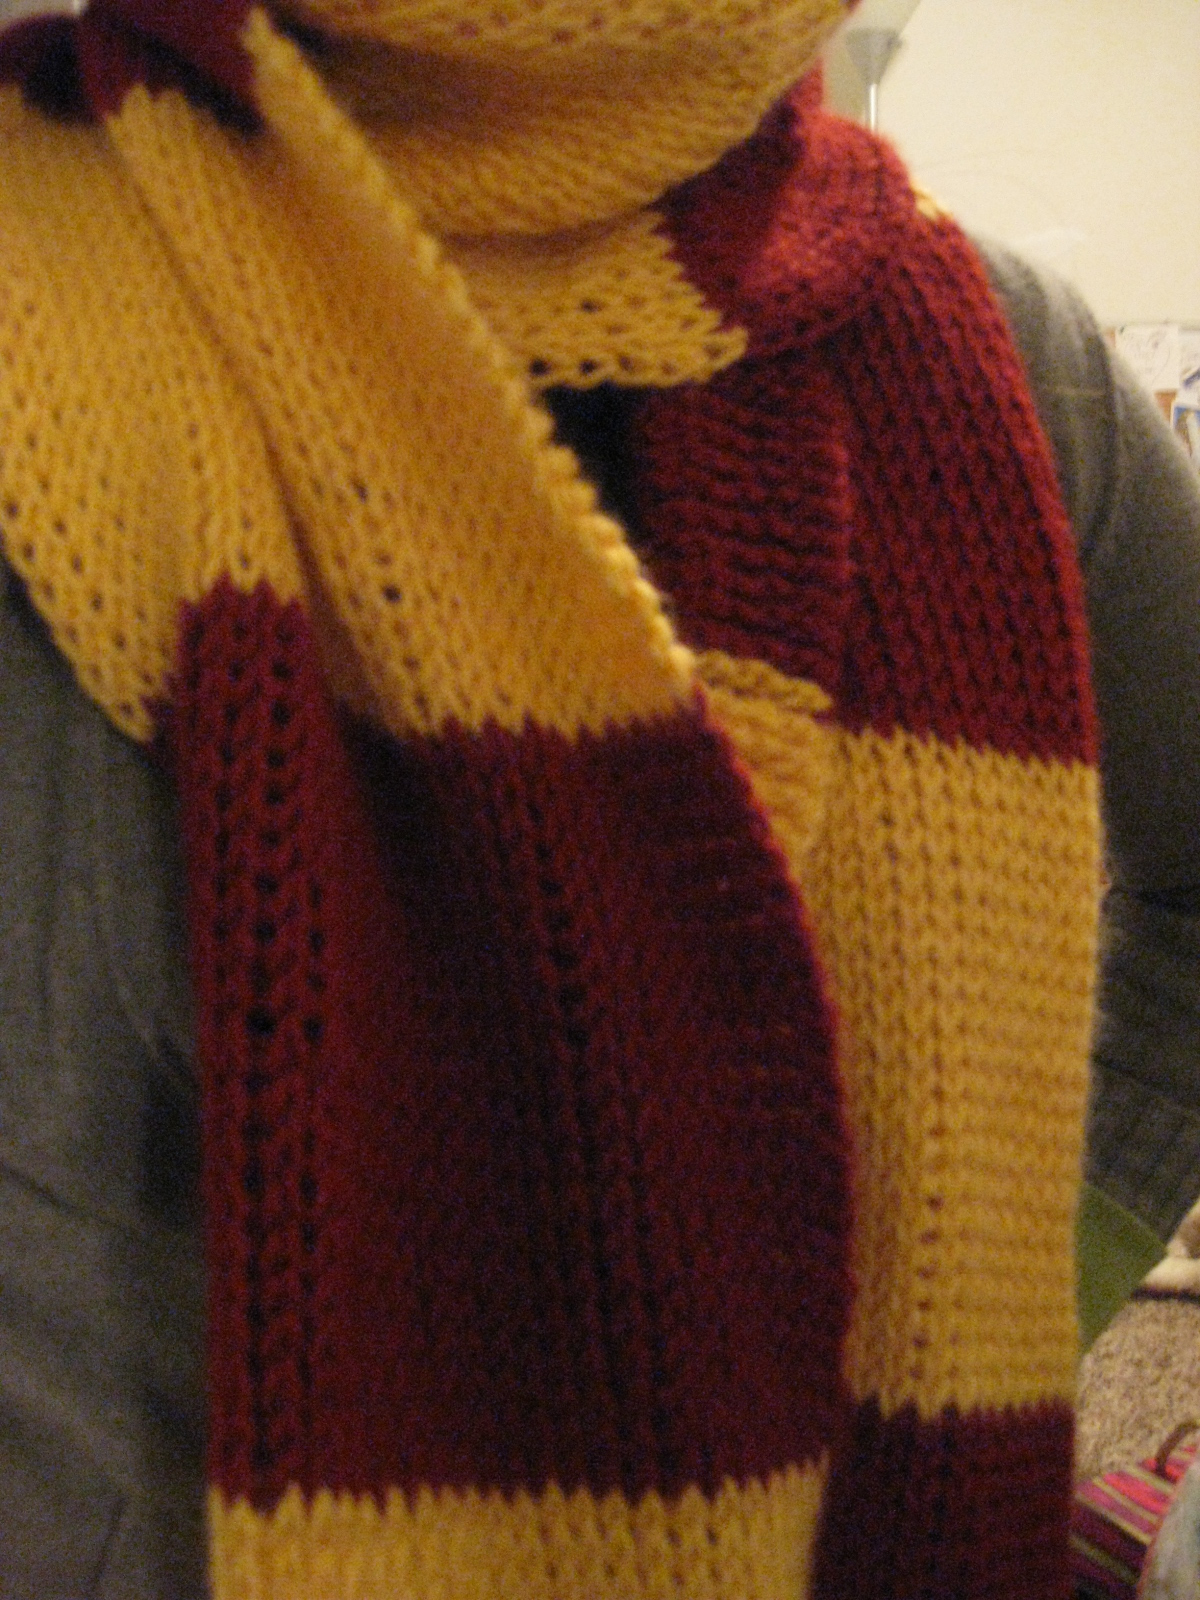 Knit Harry Potter Scarf Pattern : Live. Love. Laugh.: Harry Potter Scarf!